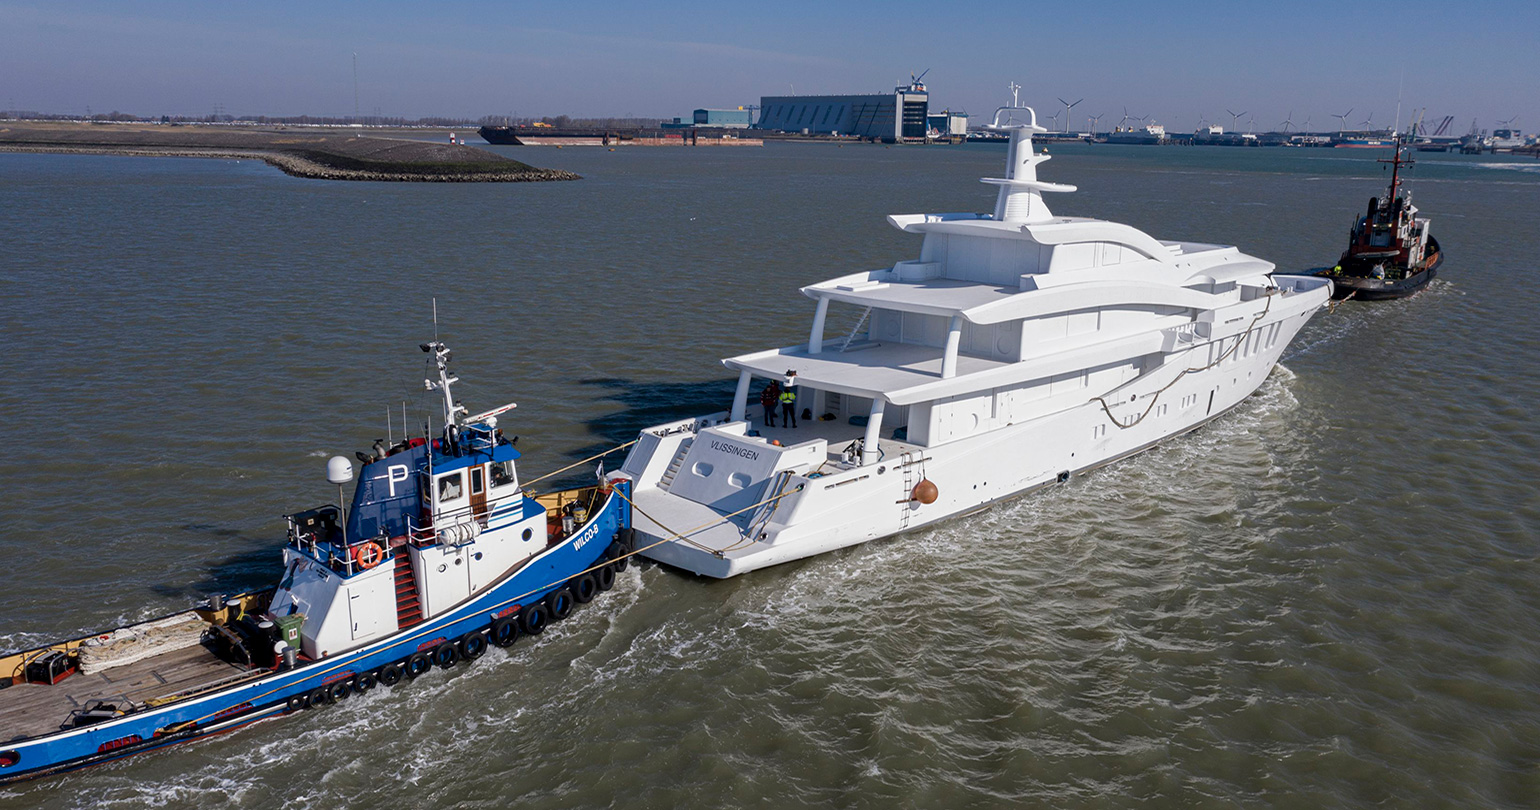 Amels 200 third hull: work is in full swing despite quarantine